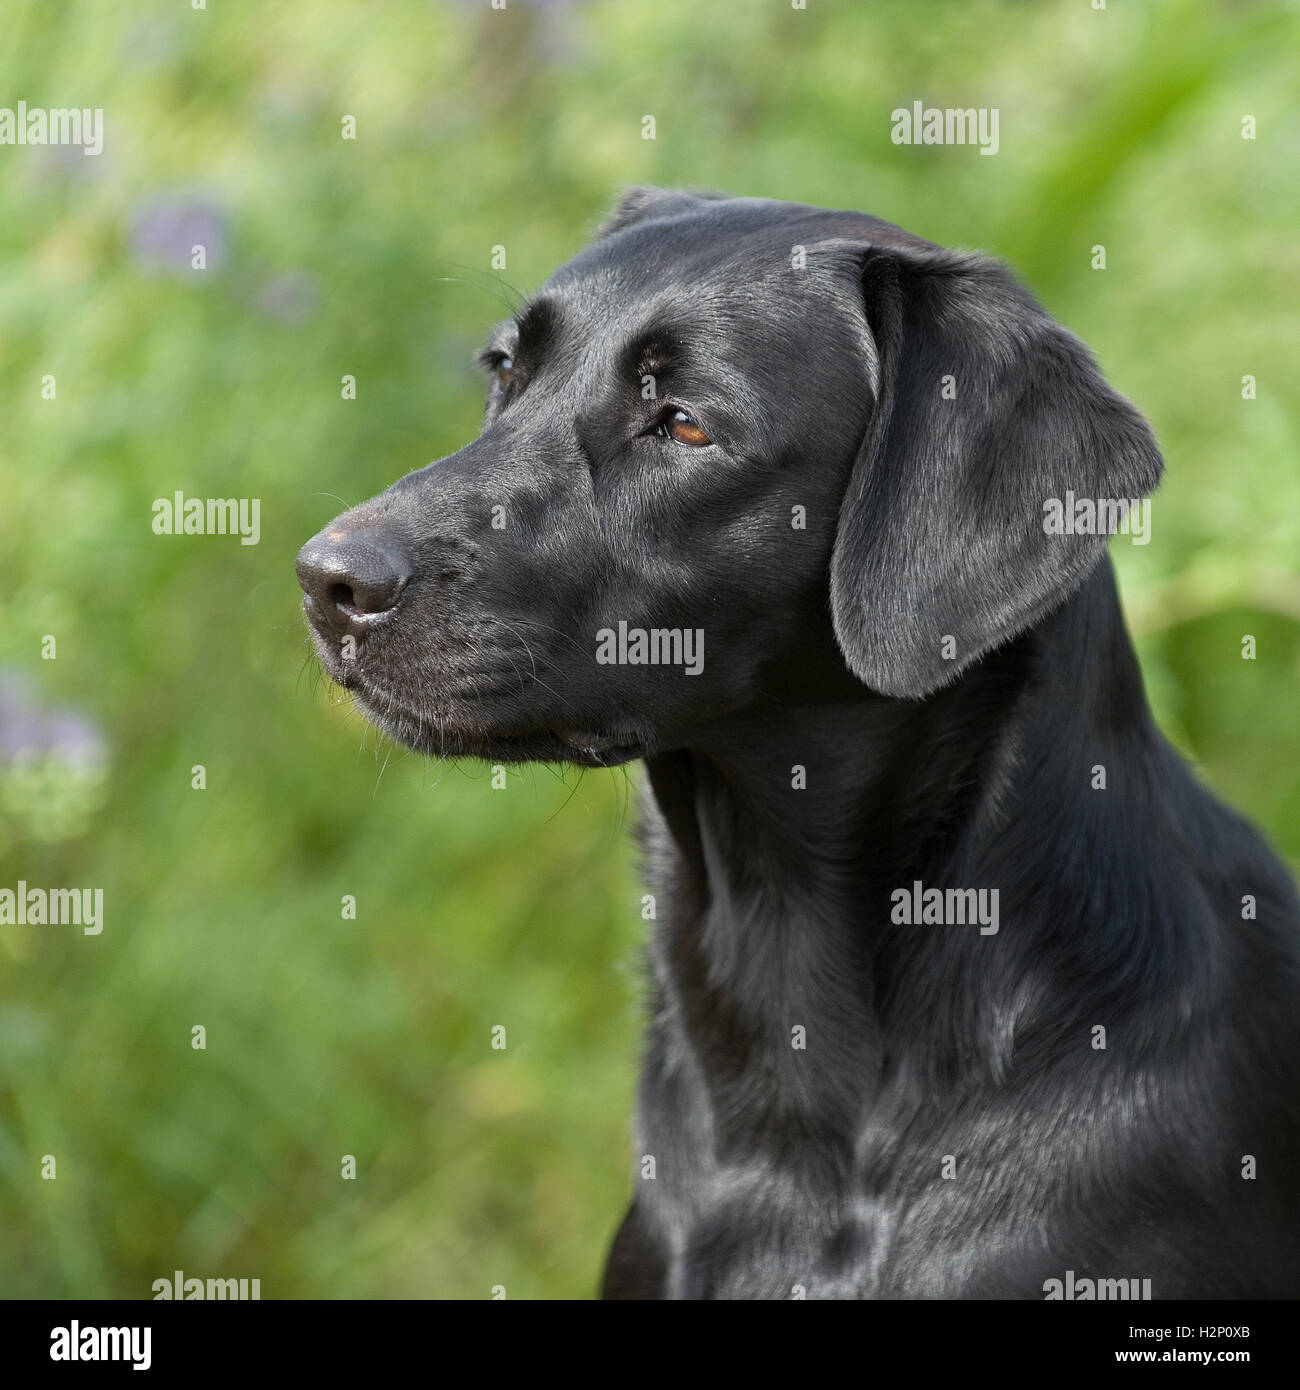 black labrador retriever dog - Stock Image